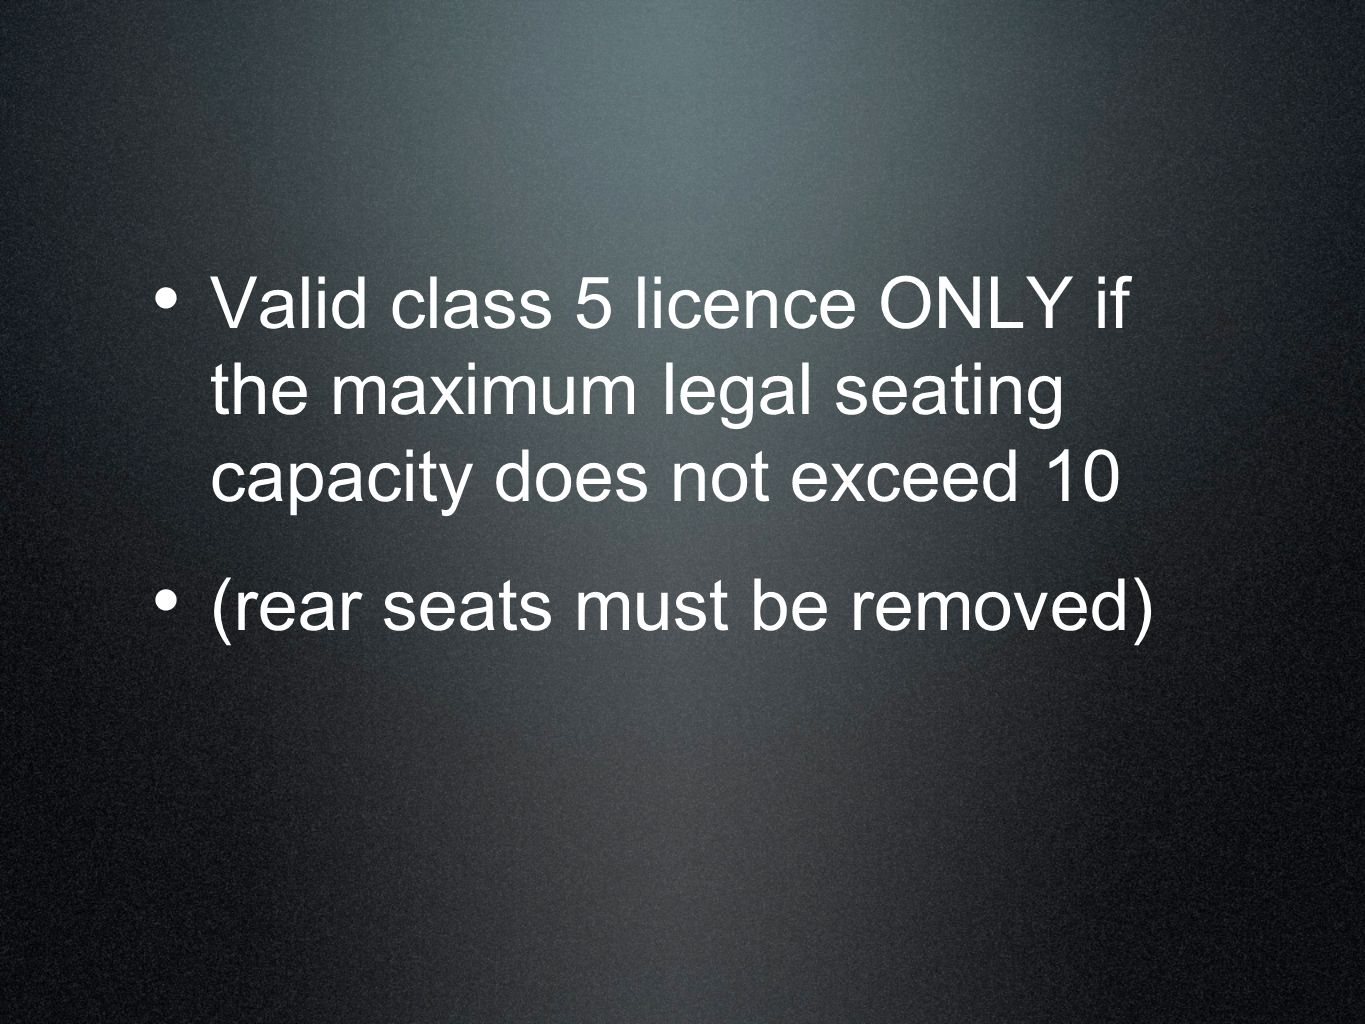 Valid class 5 licence ONLY if the maximum legal seating capacity does not exceed 10